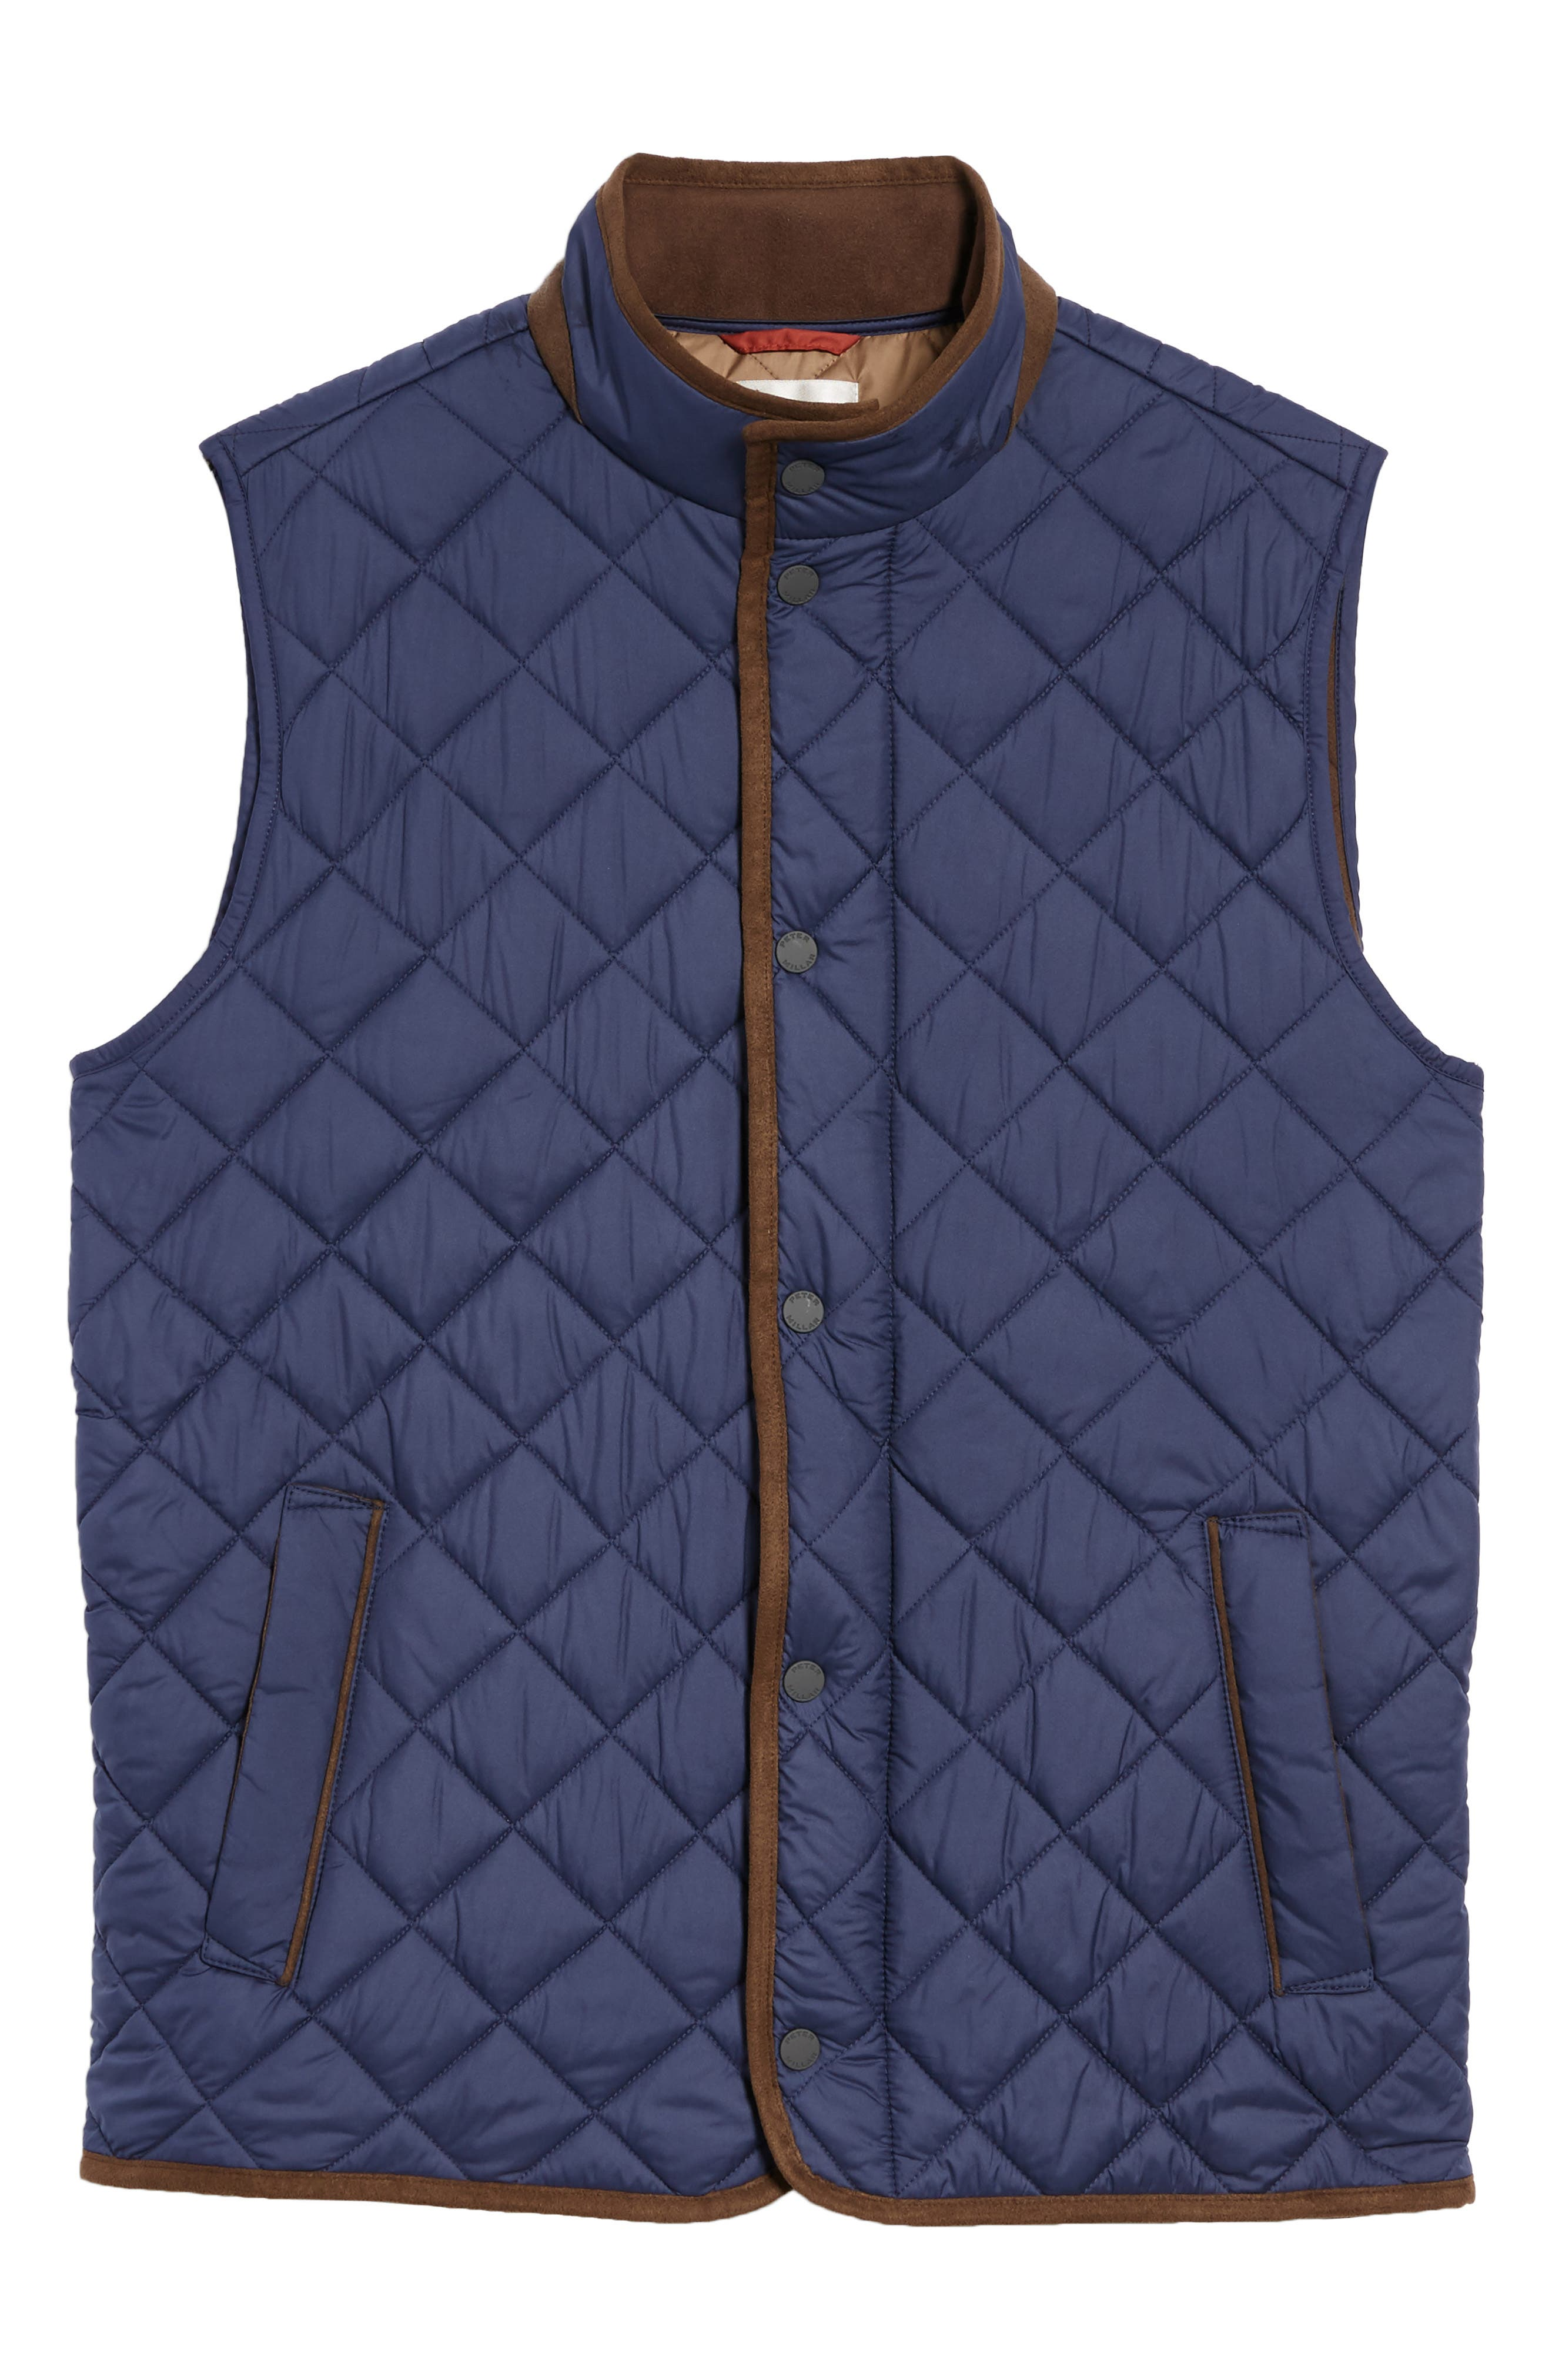 Essex Quilted Vest,                             Alternate thumbnail 6, color,                             Perfect Navy